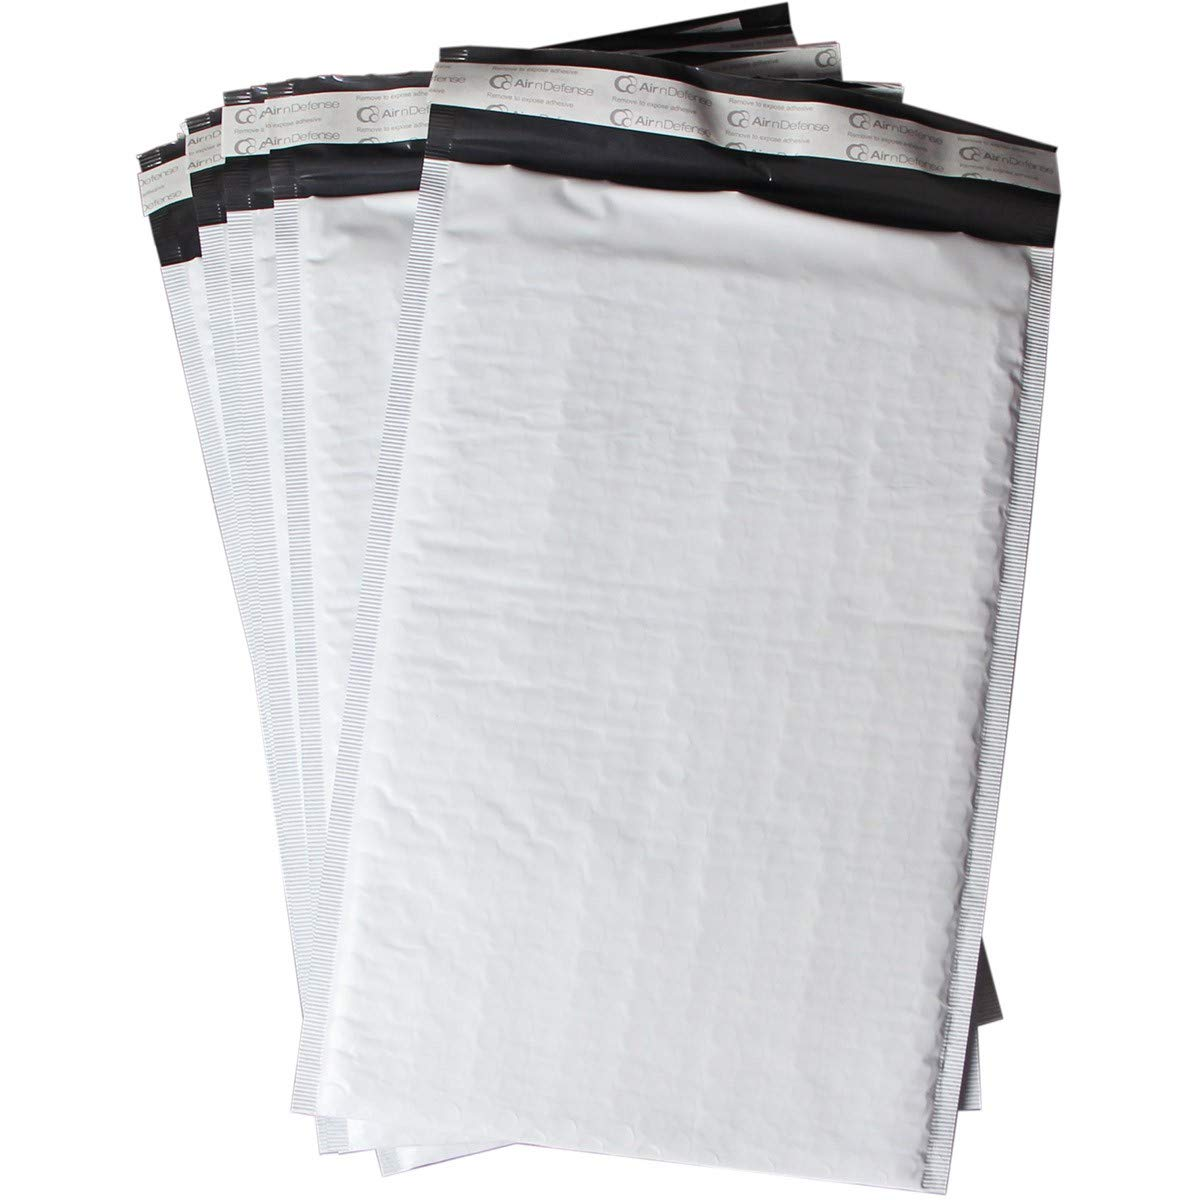 200/400/1000/2000/5000 pcs #2 8.5x12 Poly Bubble Padded Envelopes Mailers Shipping Bags AirnDefense (400) by Air n Defense